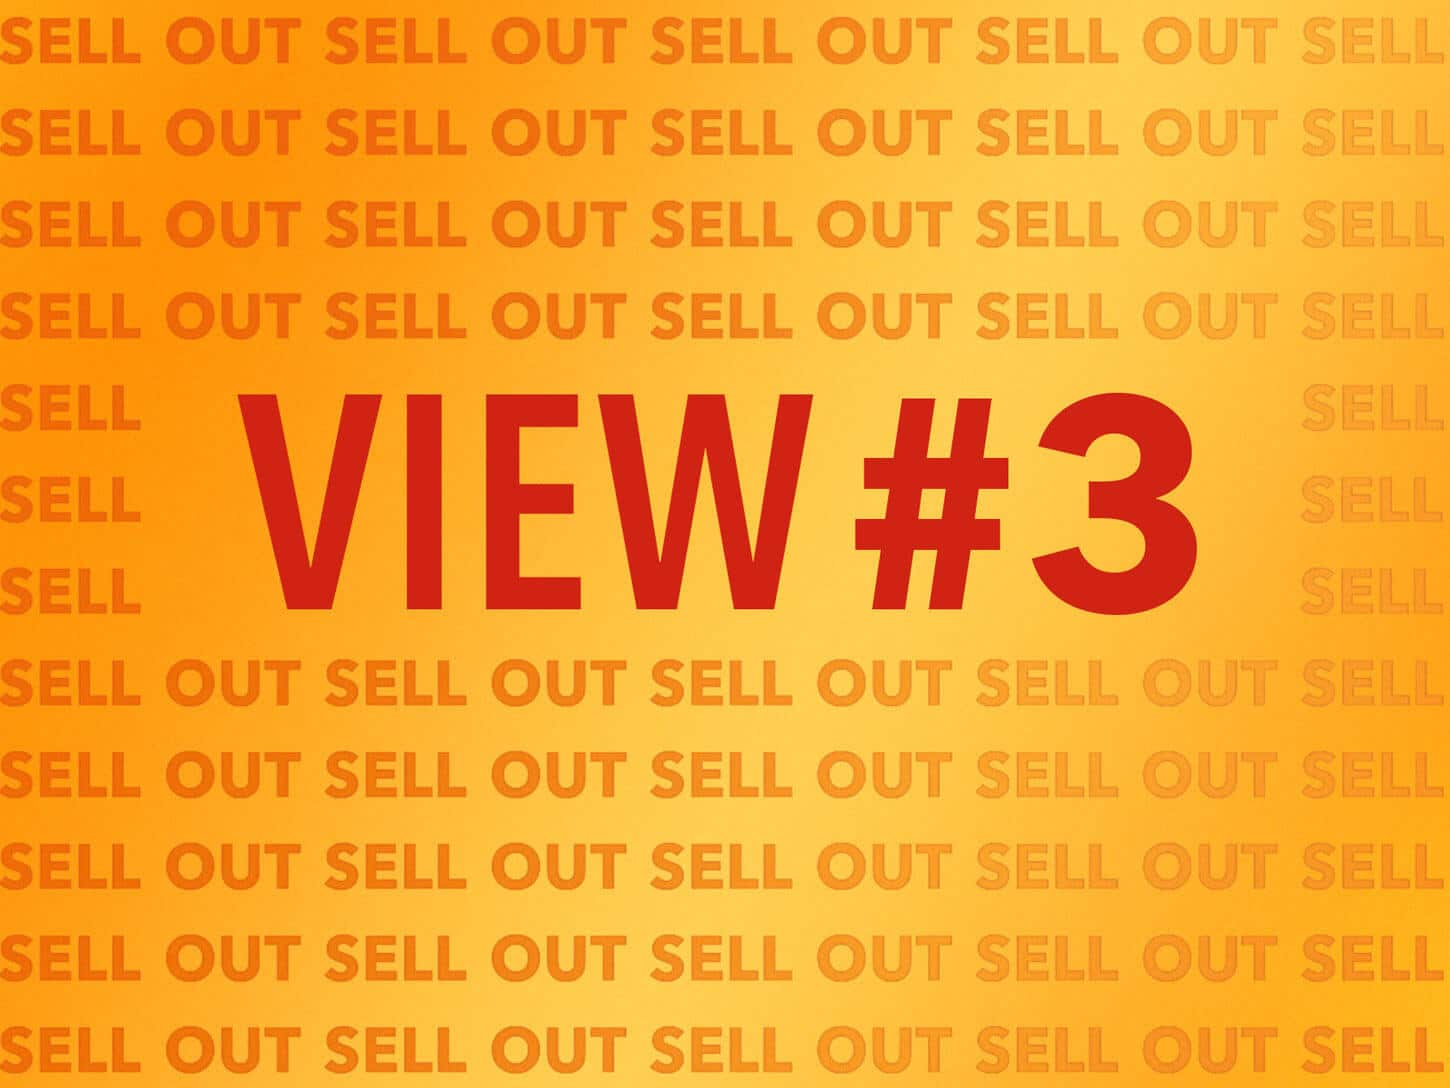 BBK View #3 Sell Out 2019